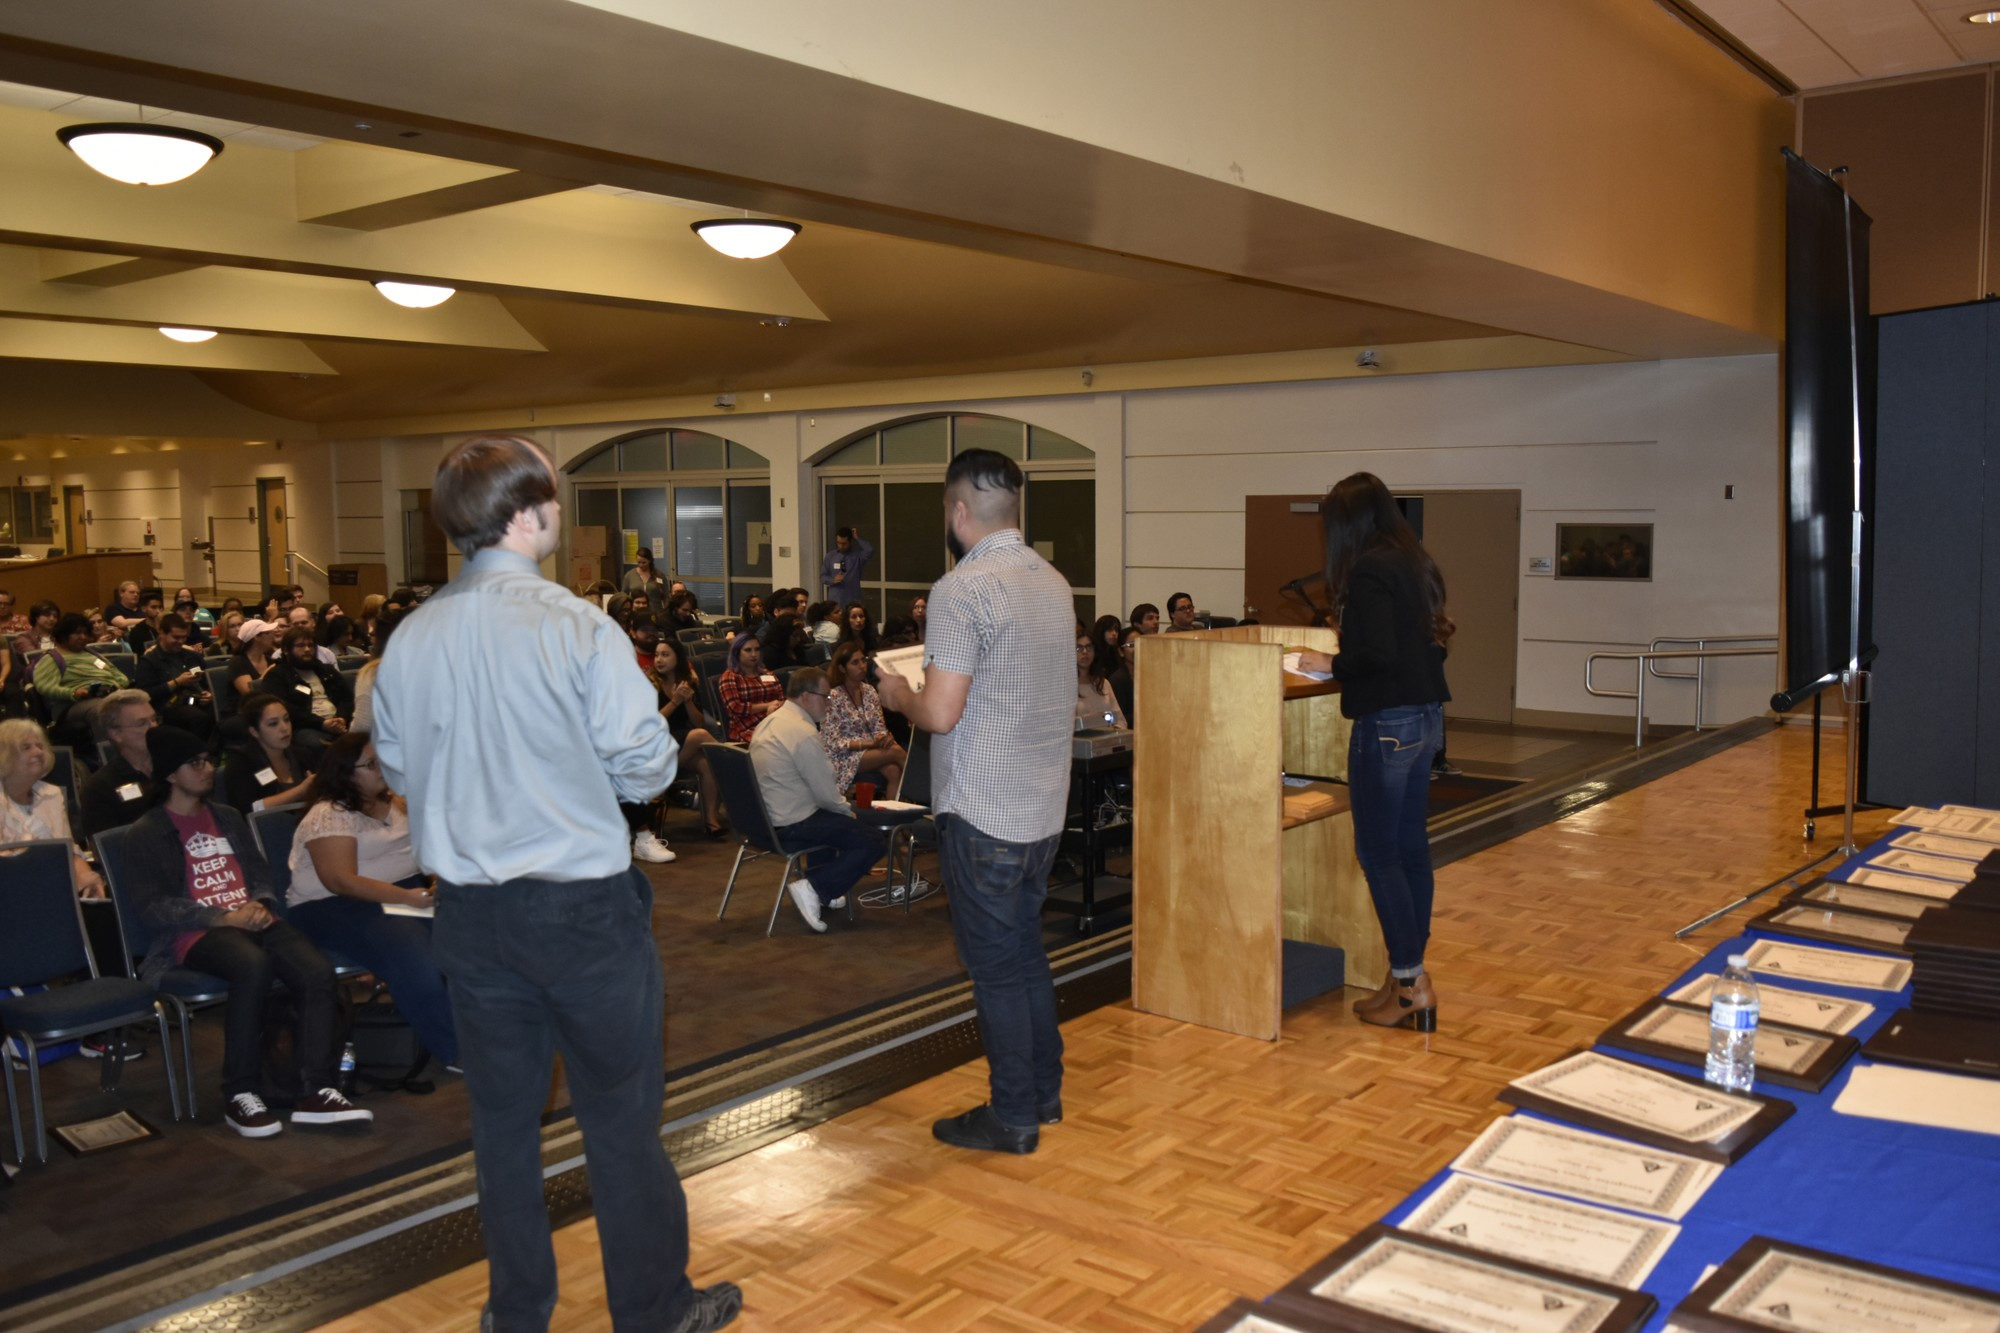 The crowed looking on as Journalism Association for community college award winners get announced. JACC was hosted at Cerritos College for the first time on Saturday Oct. 29. Photo credit: Terrel Emerson